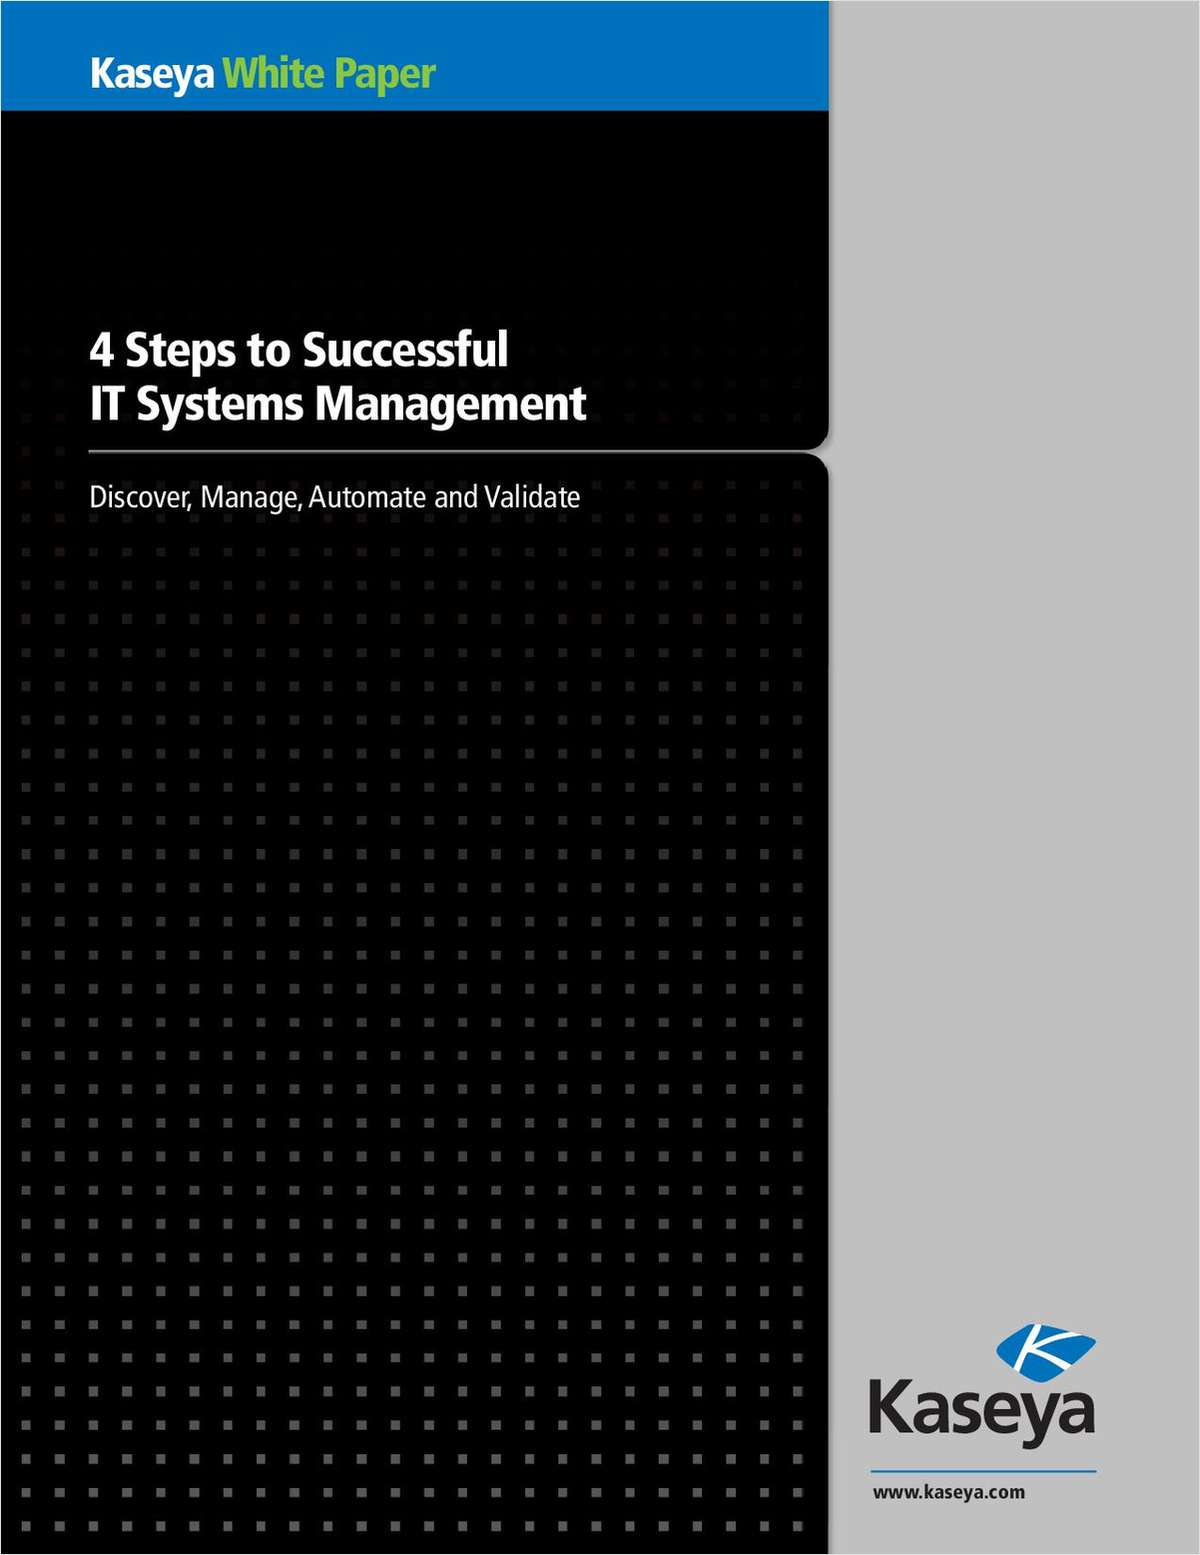 4 Steps to Successful IT Systems Management